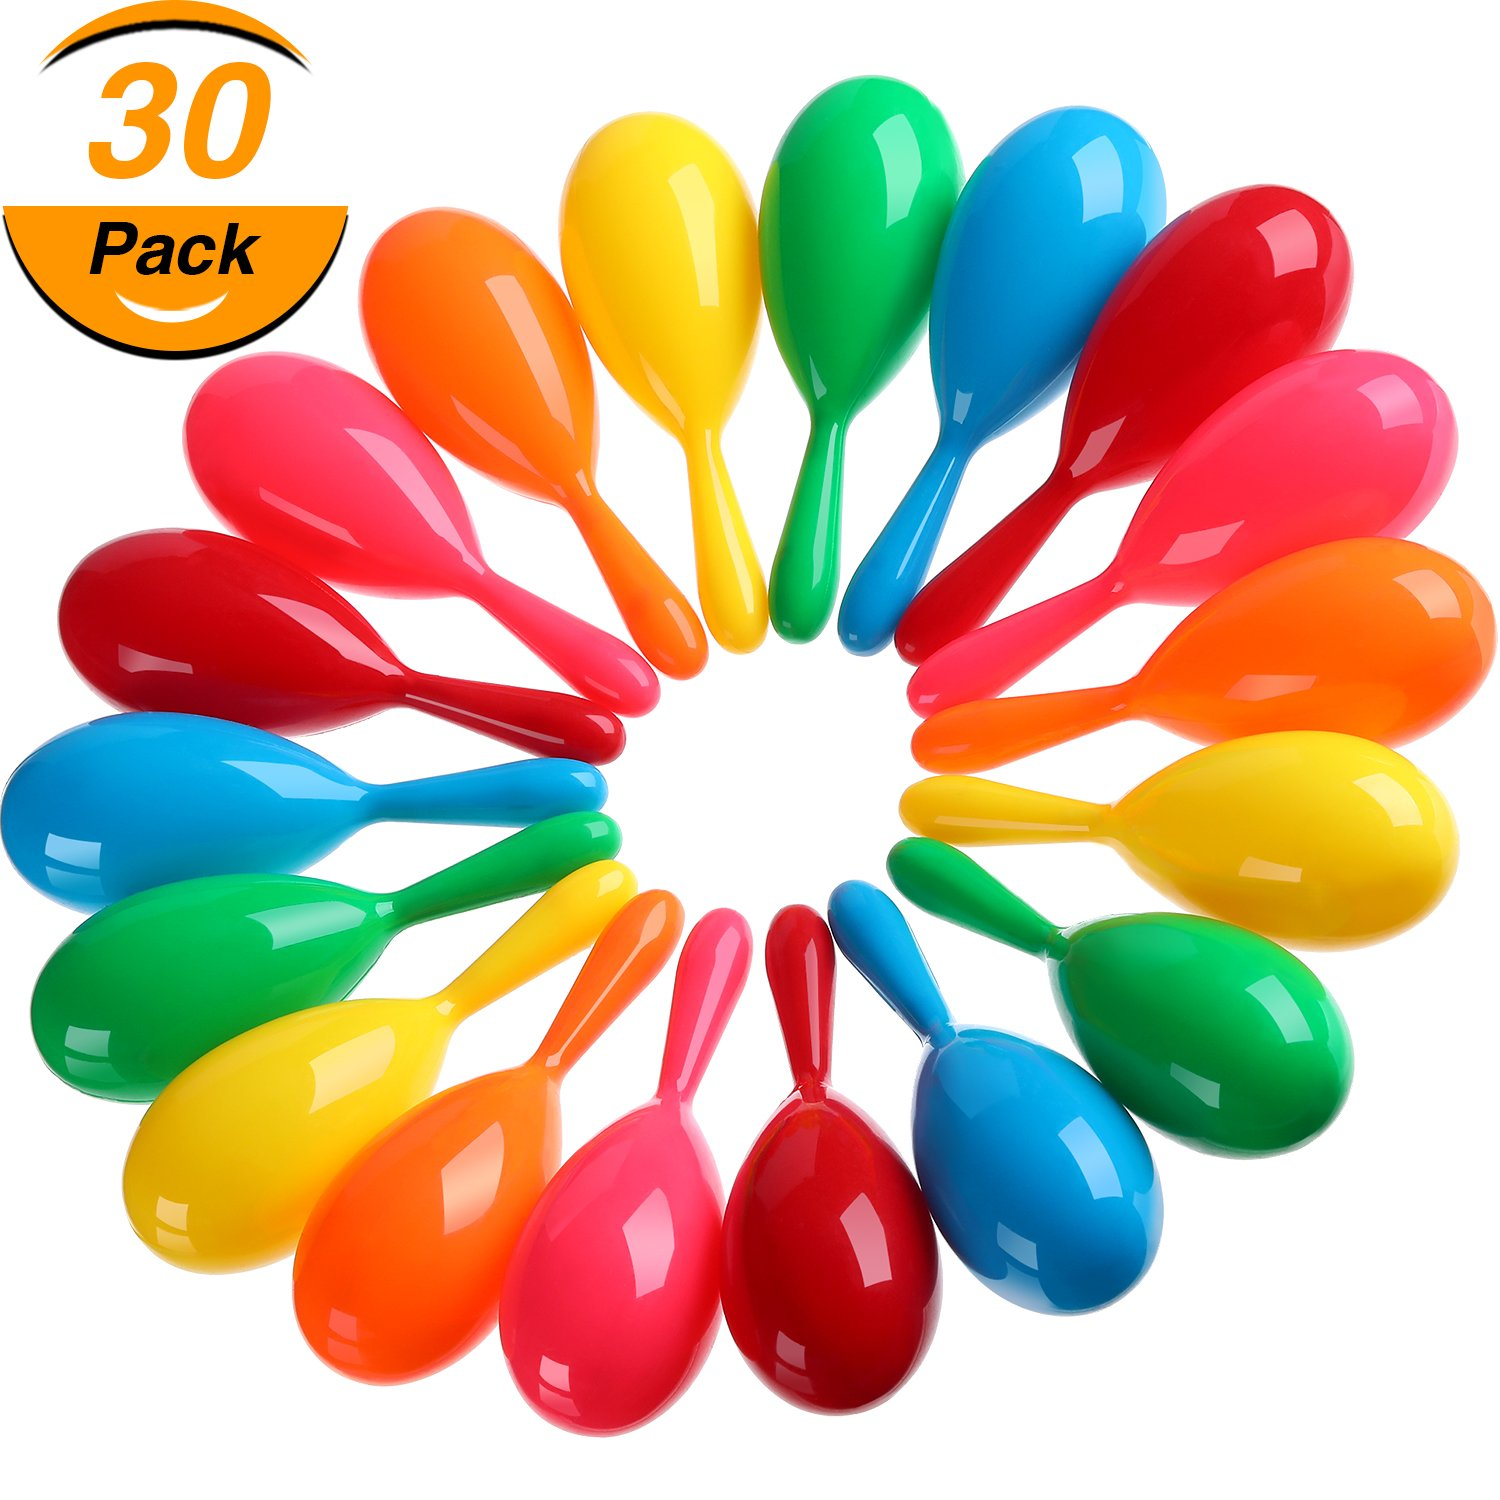 Hestya 30 Pieces Maracas Colorful Maracas Fiesta Maracas Plastic Maracas Pool Toys Noise-making Toys for Party Favors or Musical Instruments, 6 Colors